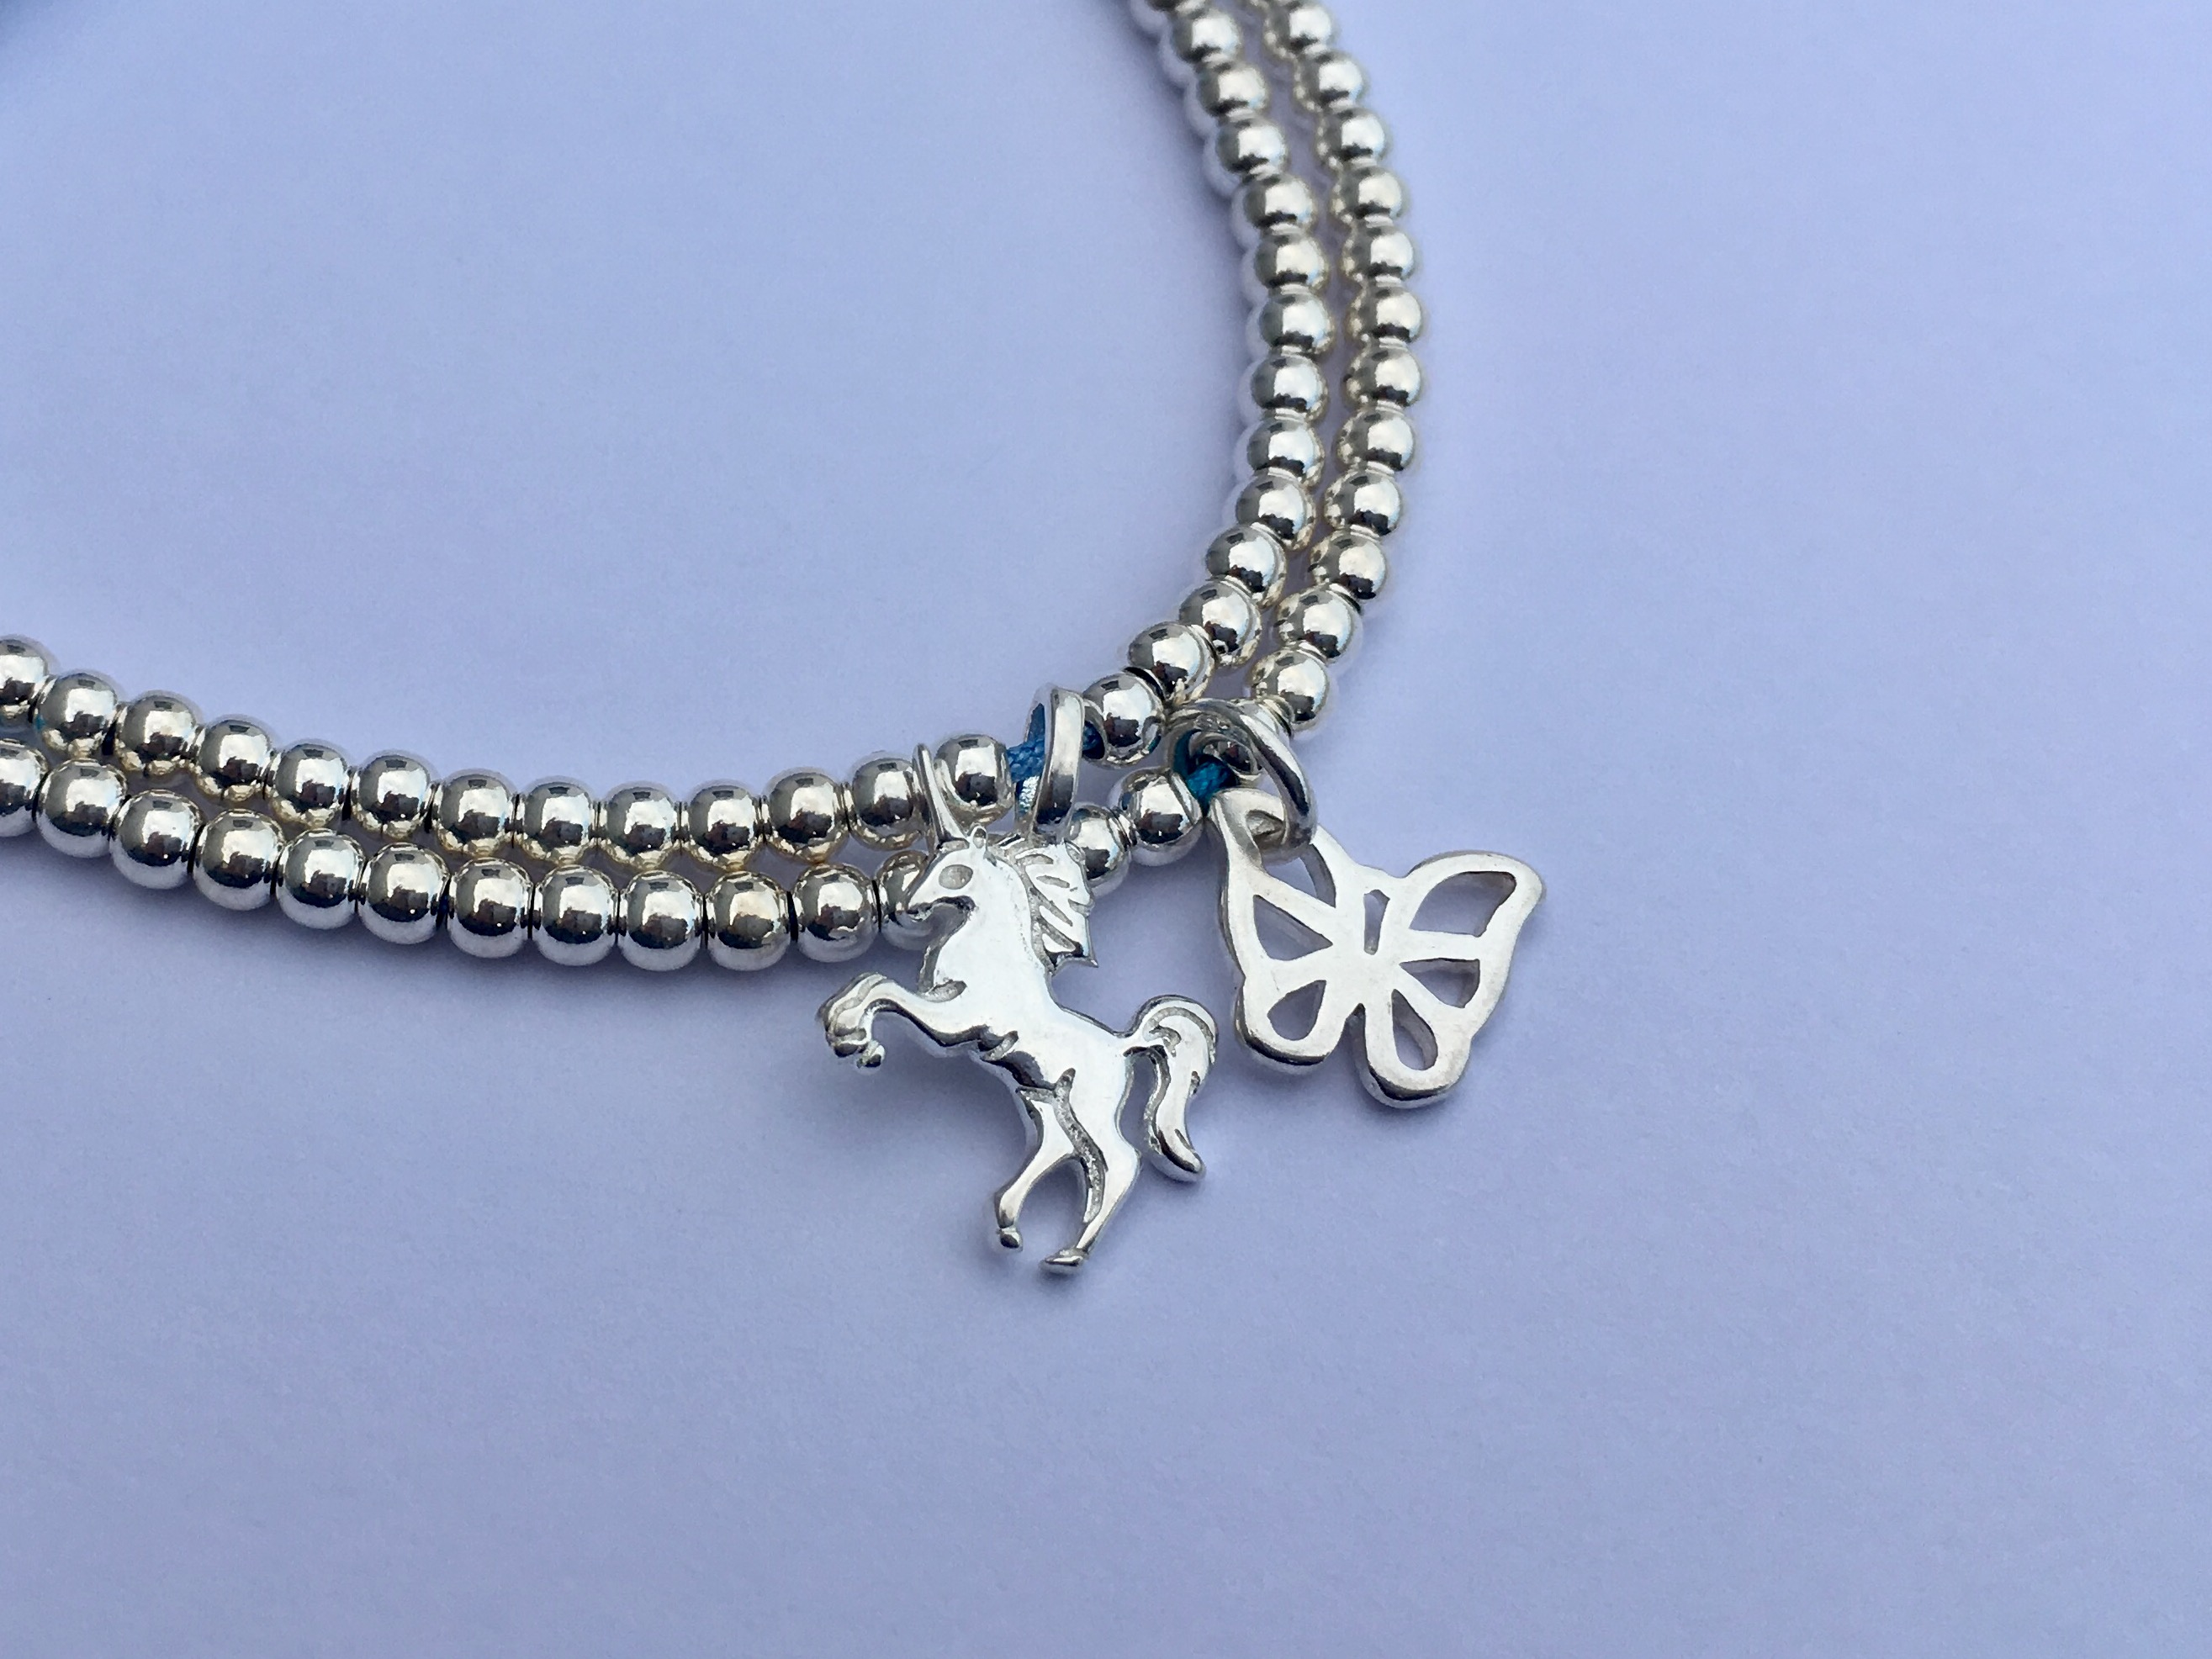 Butterfly and Unicorn charms